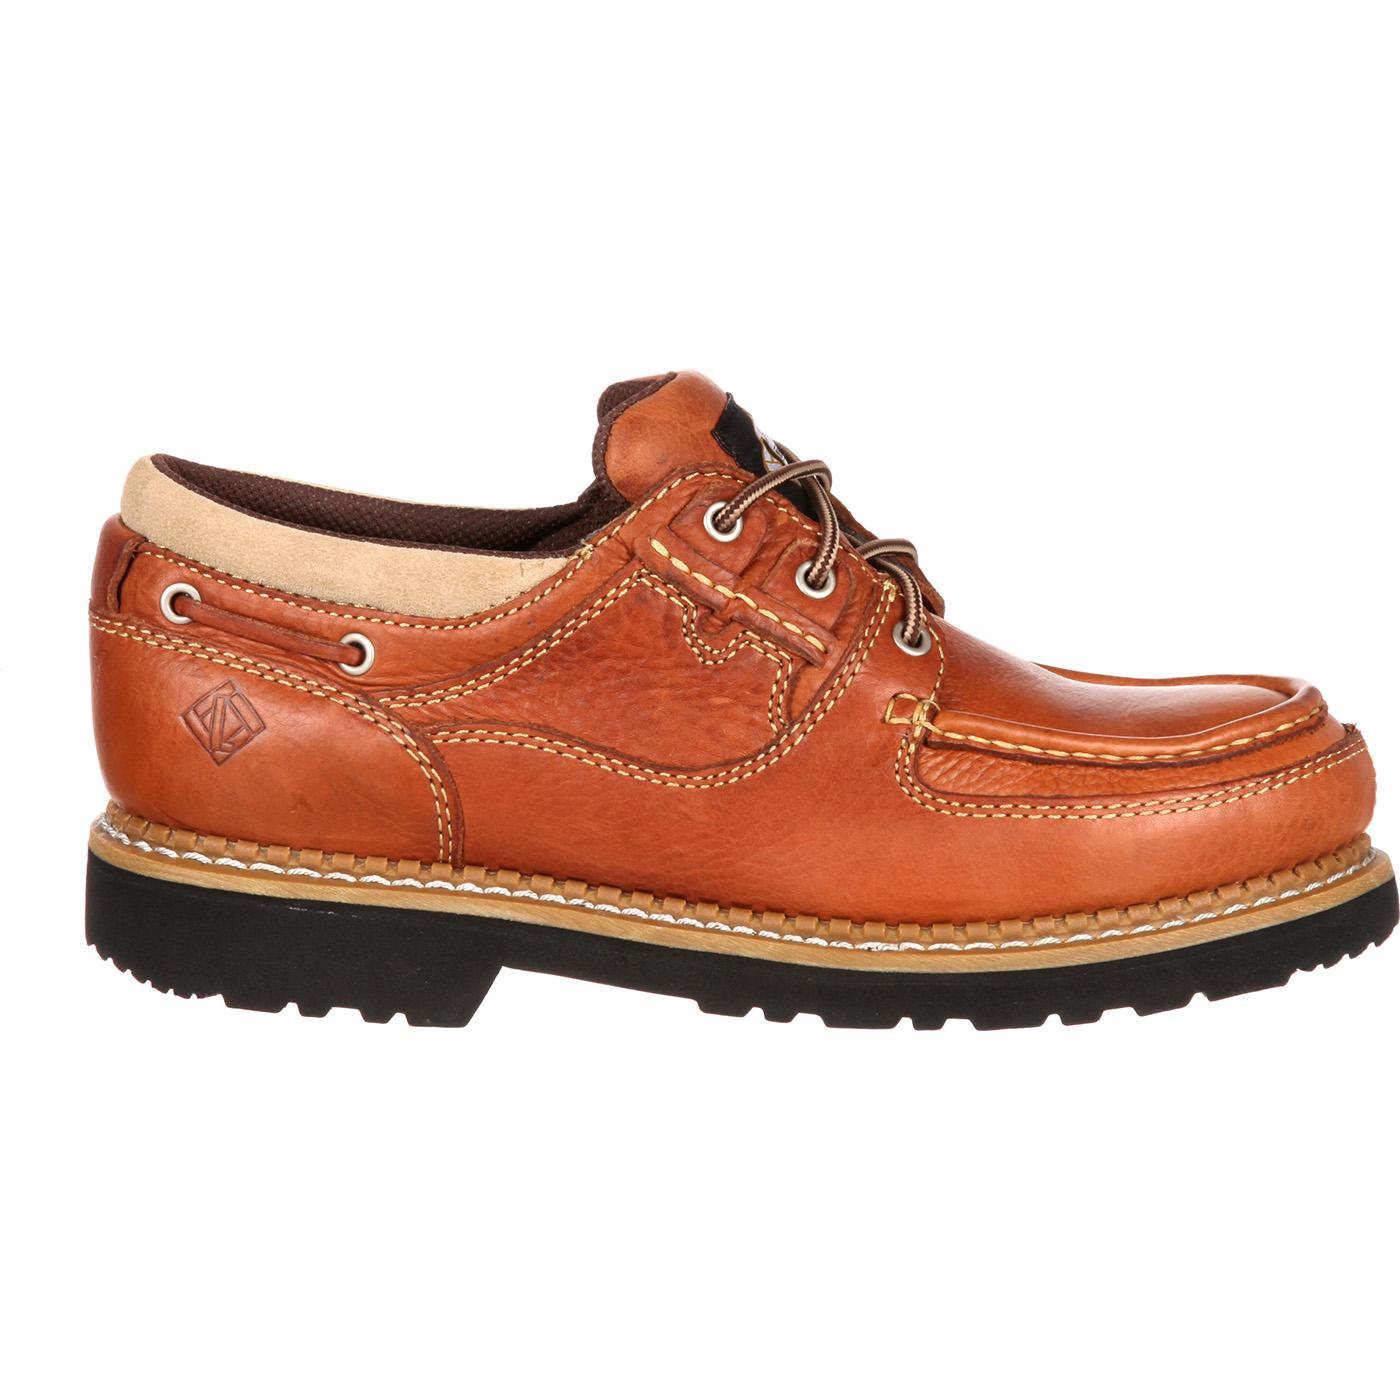 Steel Toe Boat Shoes - By Lehigh Safety Shoes #5142